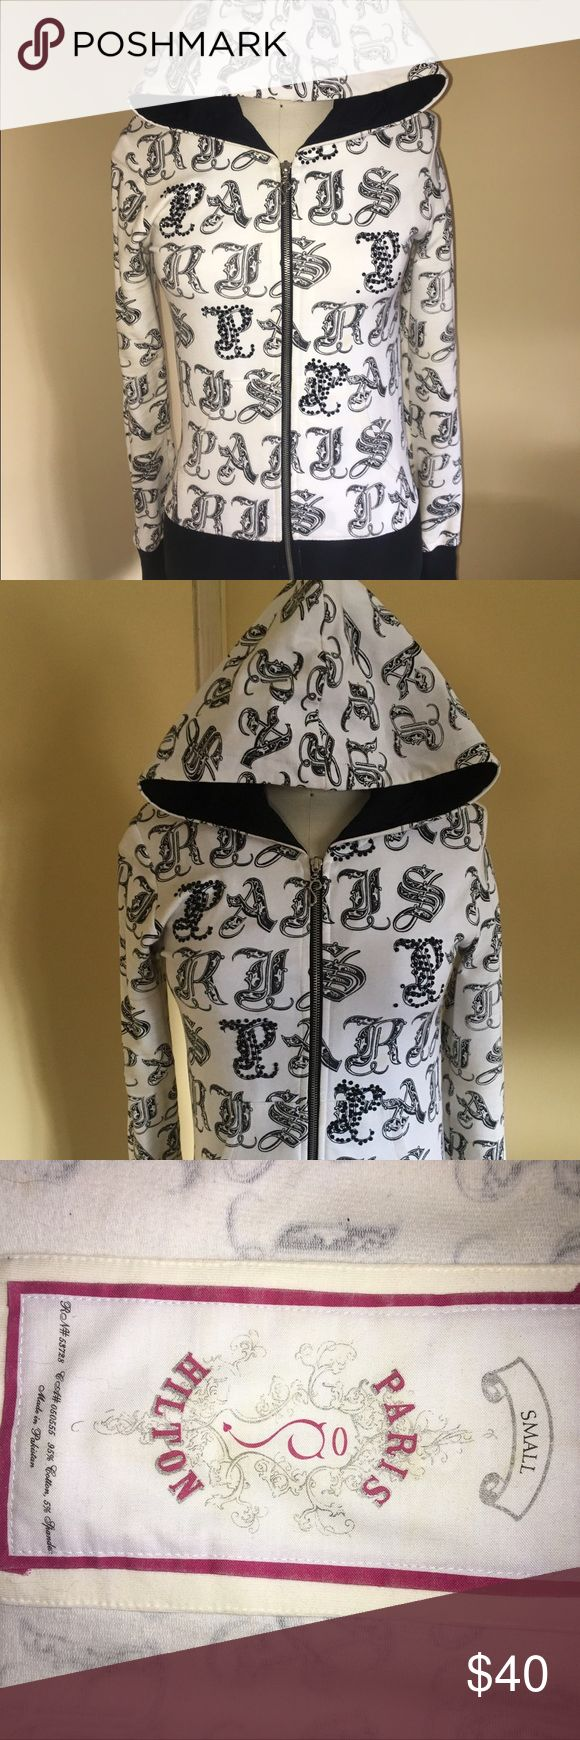 Paris Hilton zip up Hoodie size small Paris Hilton zip up hoodie size small made in Pakistan jeweled p's and signature Paris zipper pull. Black and white! Cotton spandex blend paris hilton Tops Sweatshirts & Hoodies